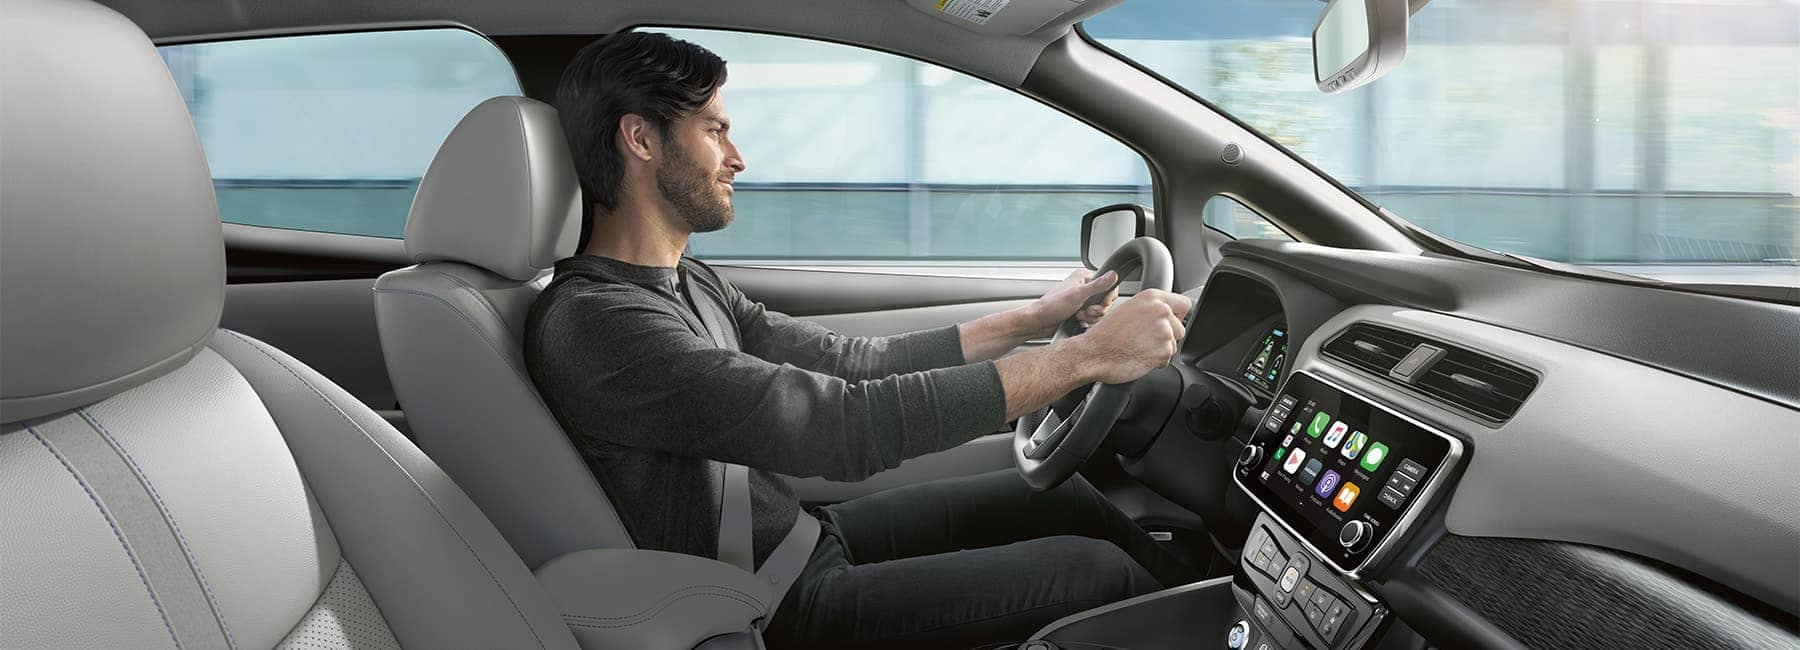 Young man driving a 2020 Nissan Leaf